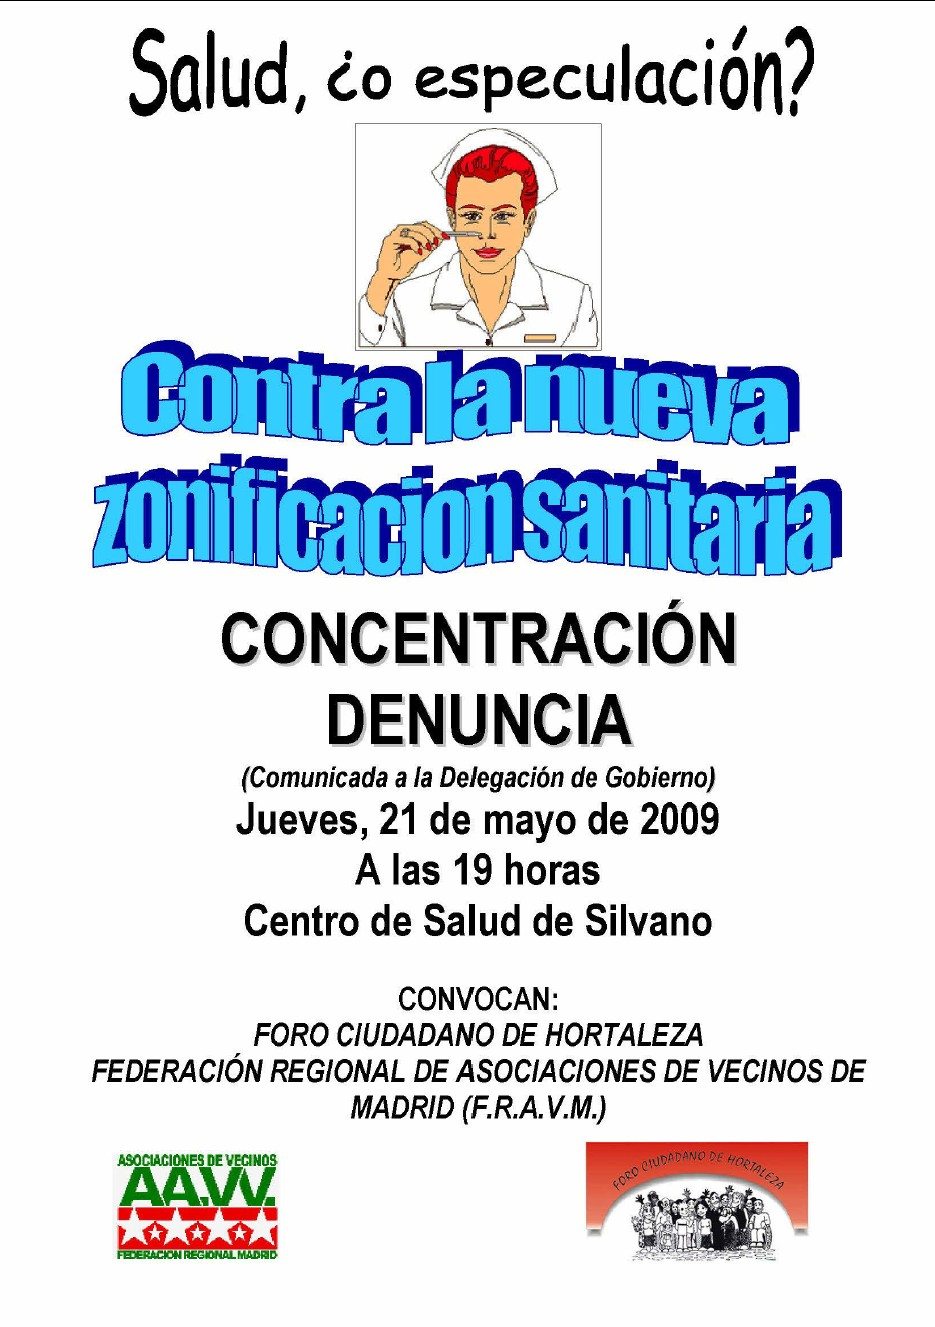 CONCENTRACIN DENUNCIA: Jueves 21 a las 19 horas en el Centro de Salud de Silvano.